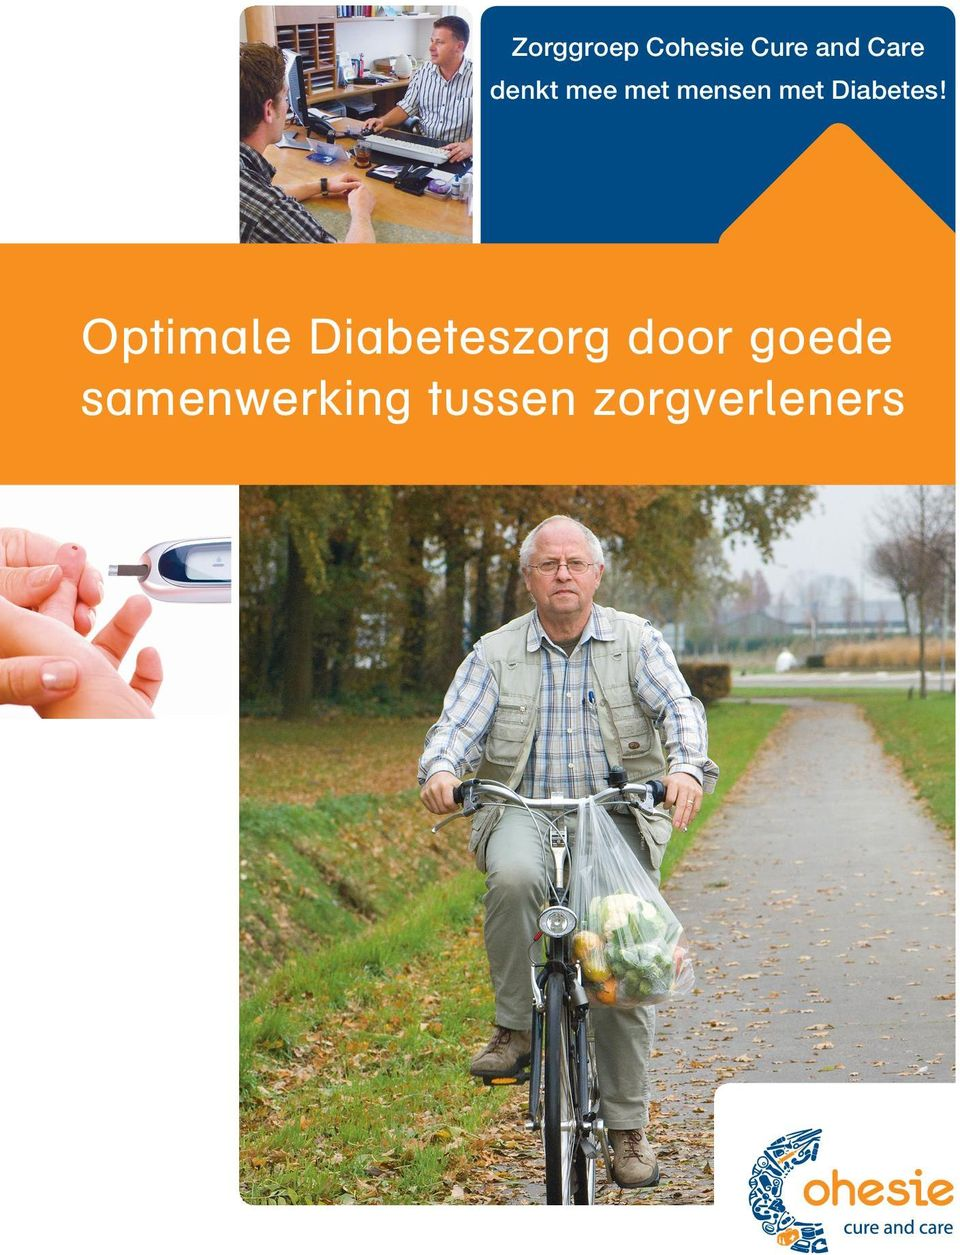 Optimale Diabeteszorg door goede